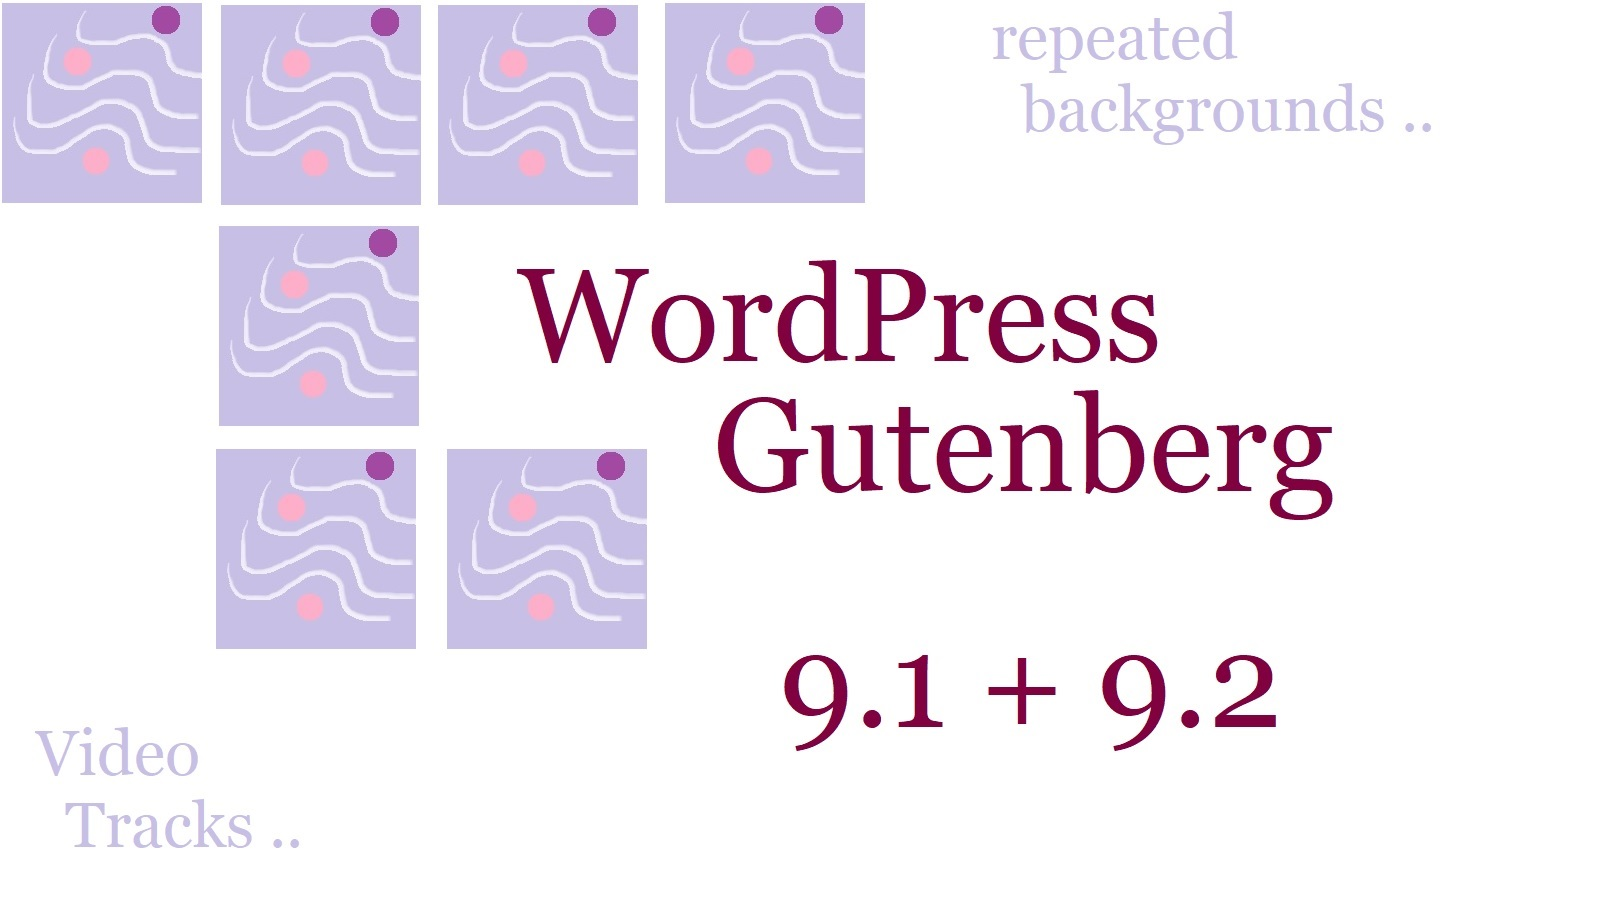 wordpress-gutenberg-9.1-9.2